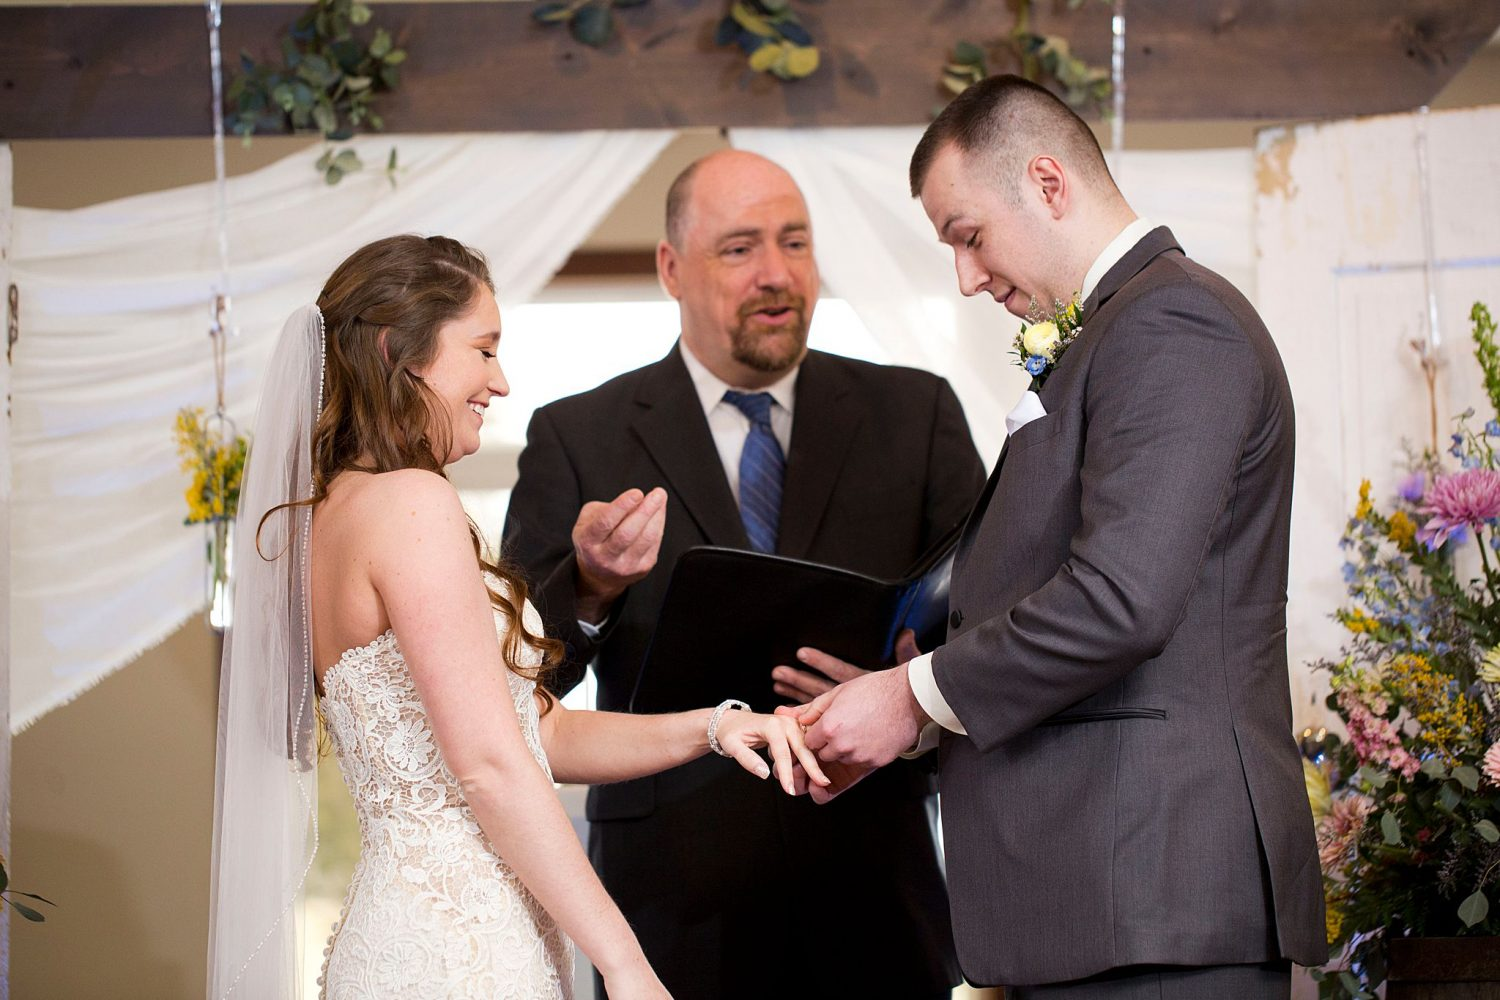 Groom putting ring on bride's finger while they smile.